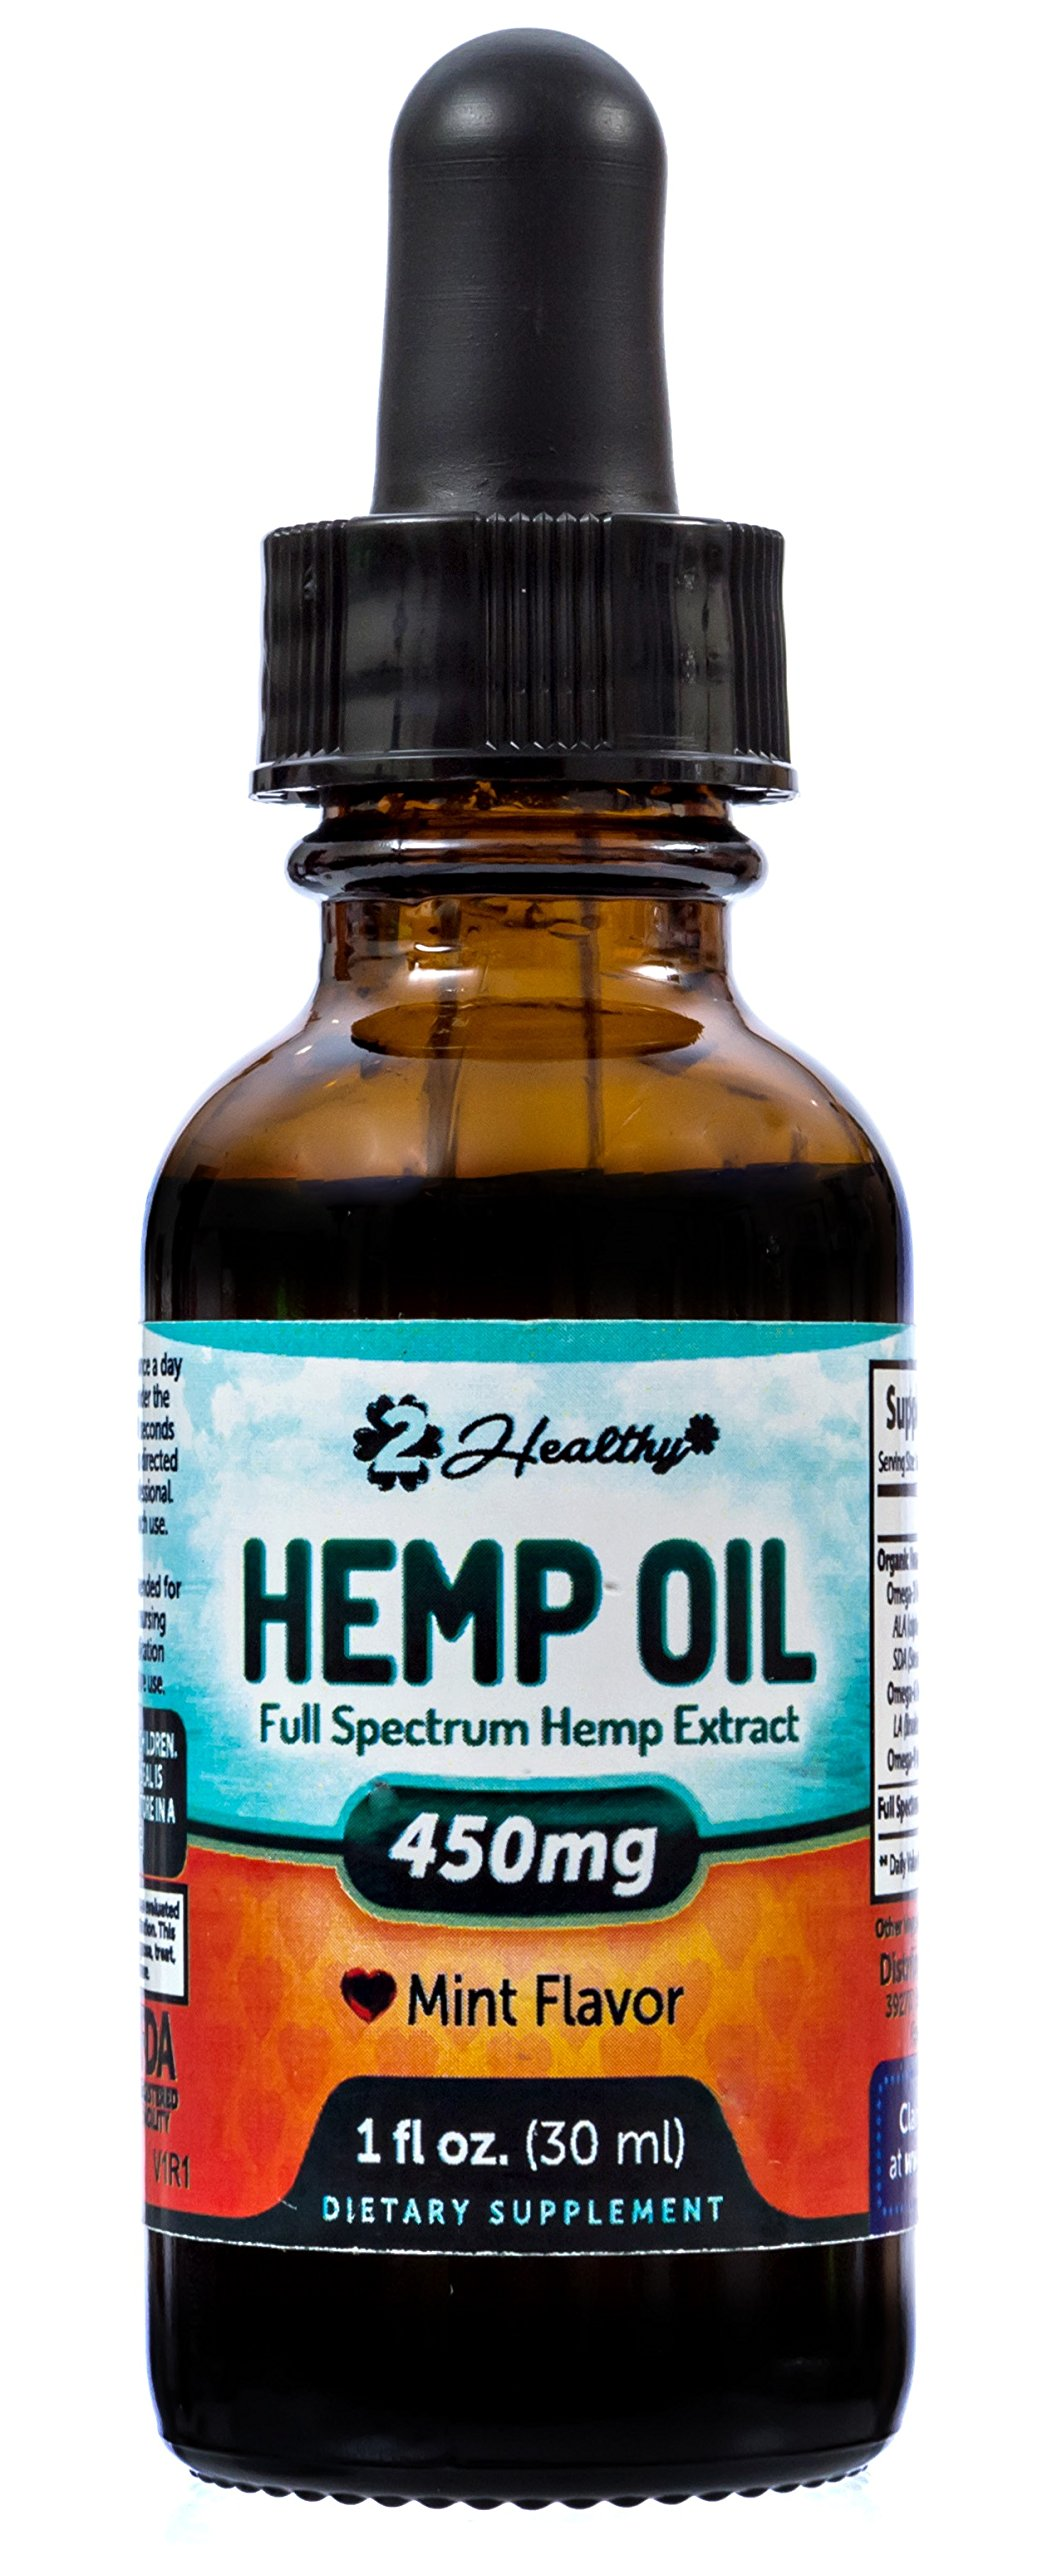 Premium Hemp Oil Mint Drops (450mg) for Pain Relief, Stress Support & Anti Anxiety Supplement - Contains Omega 3 & 6 Fatty Acids - May Help Improve Sleep & Reduce Chronic Pain